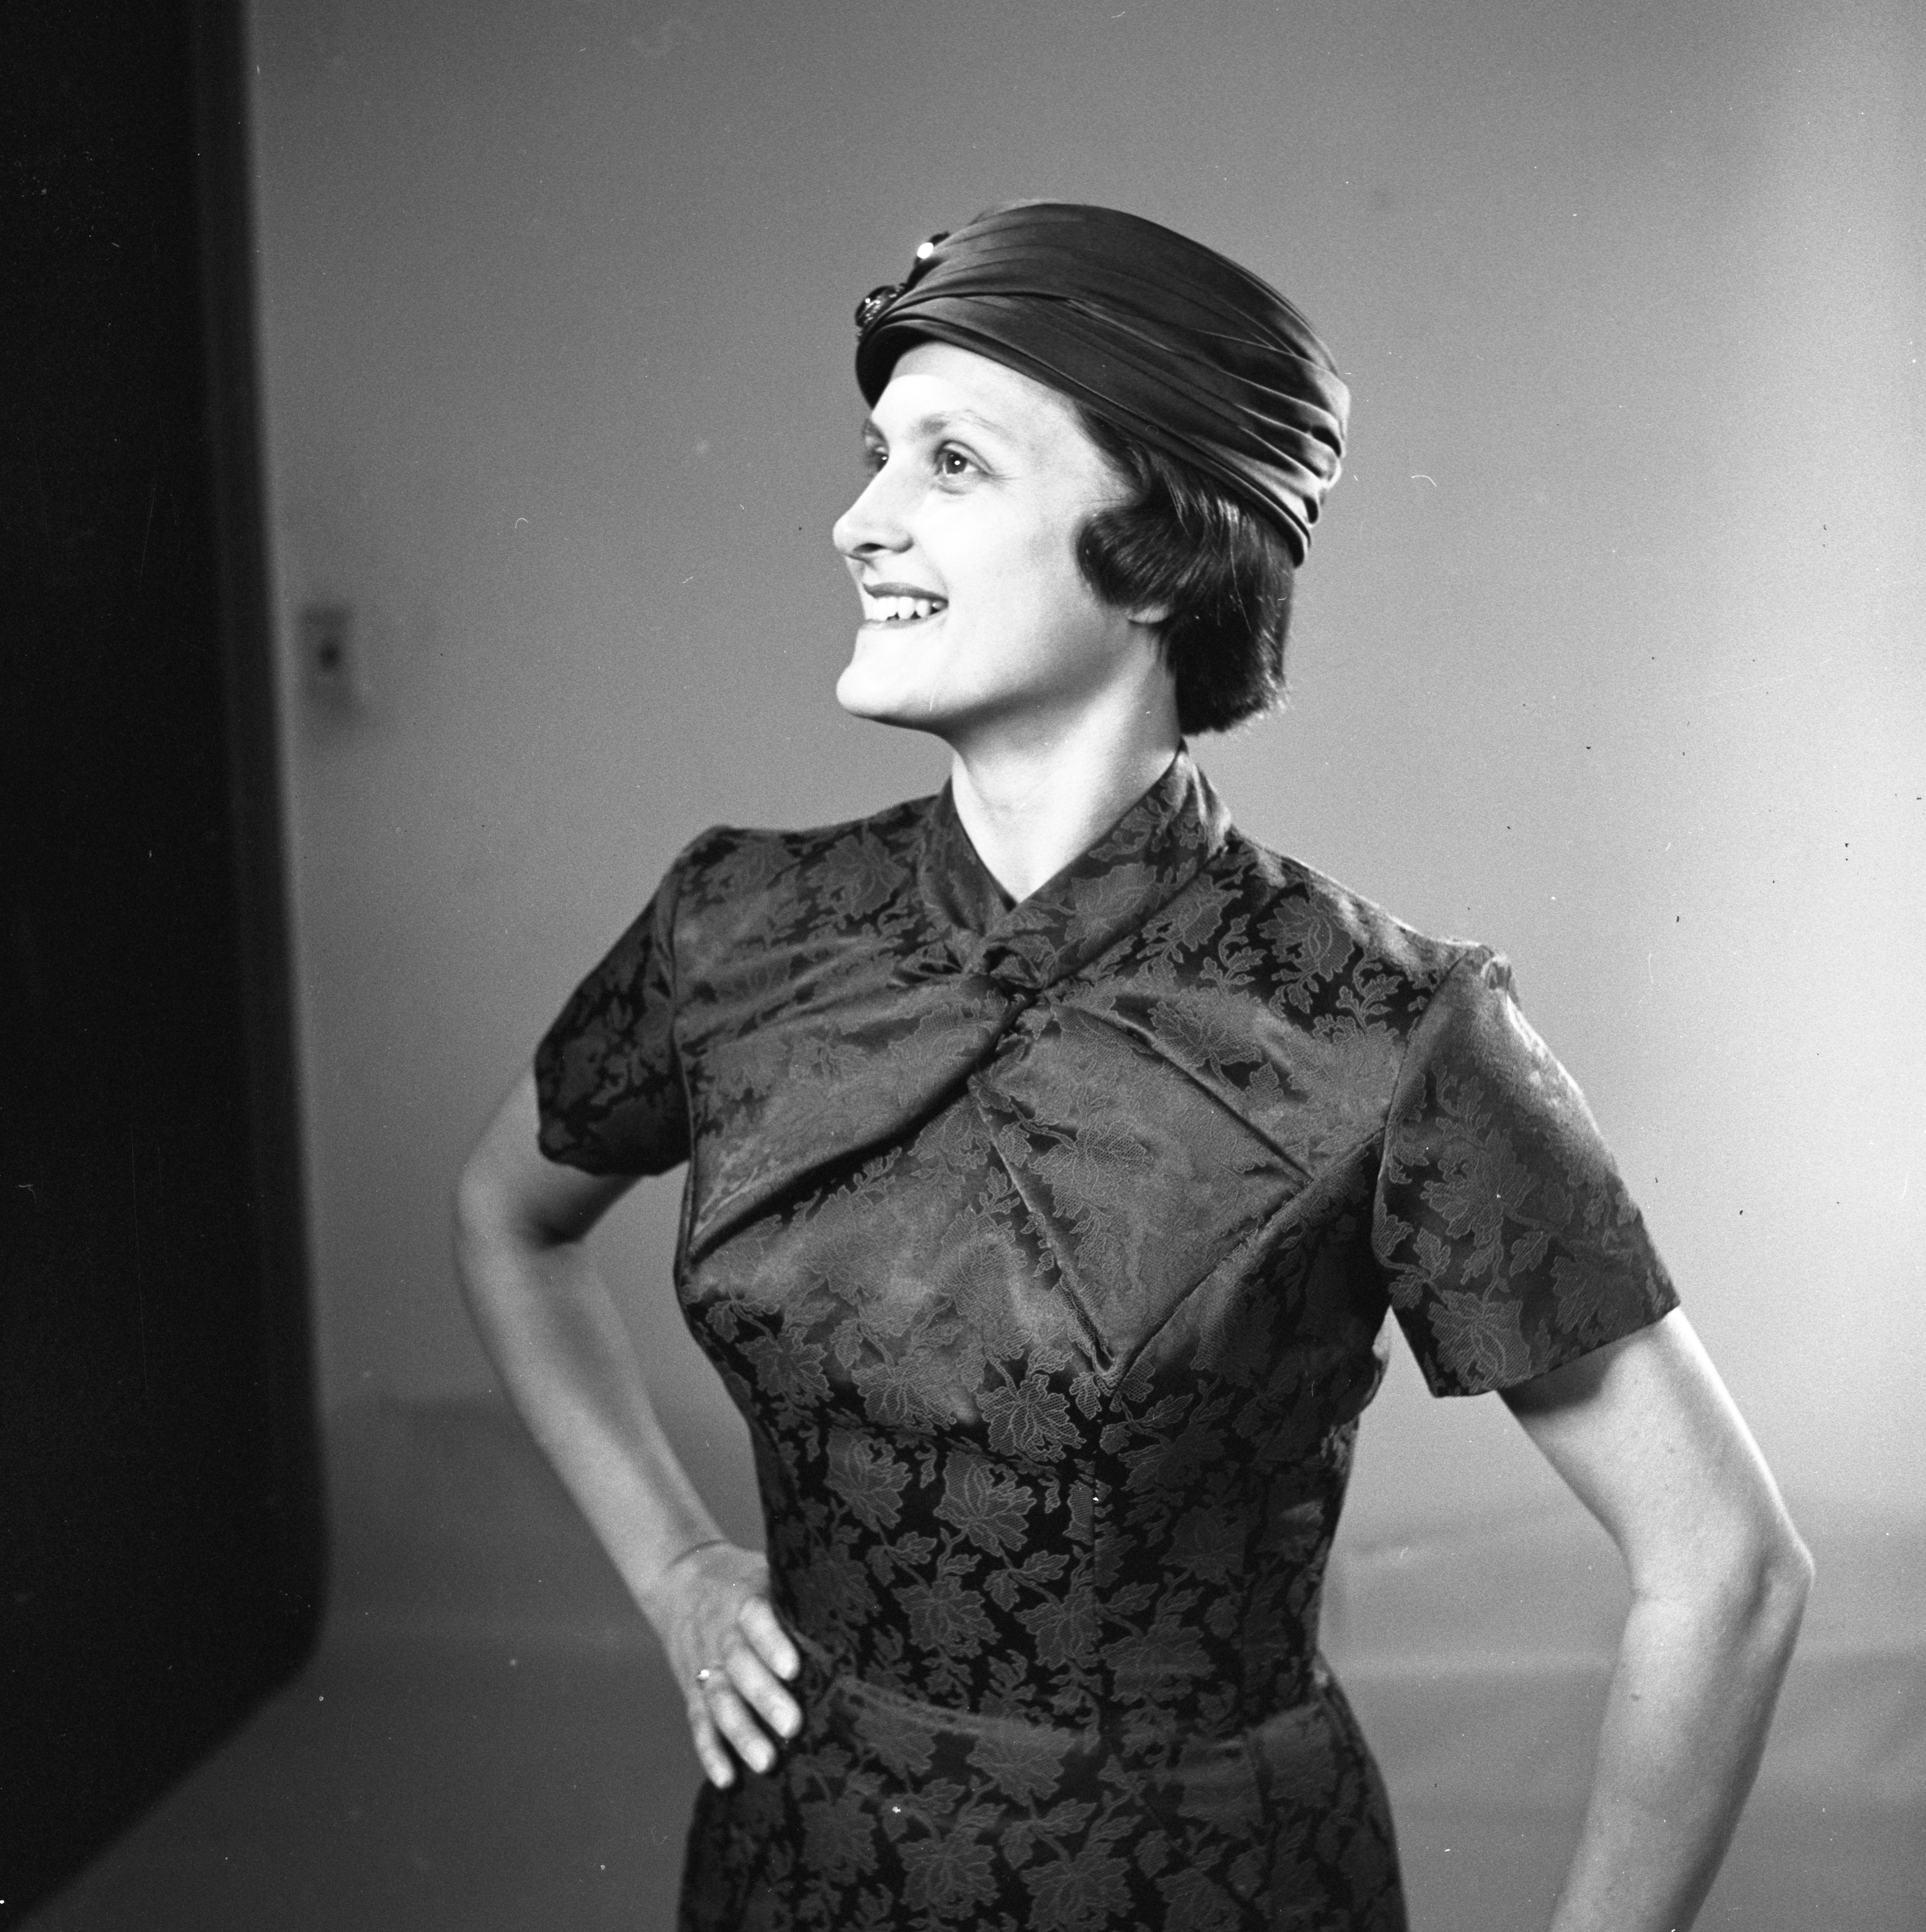 Edith Dale Models A Fall Cocktail Dress, October 1956 image